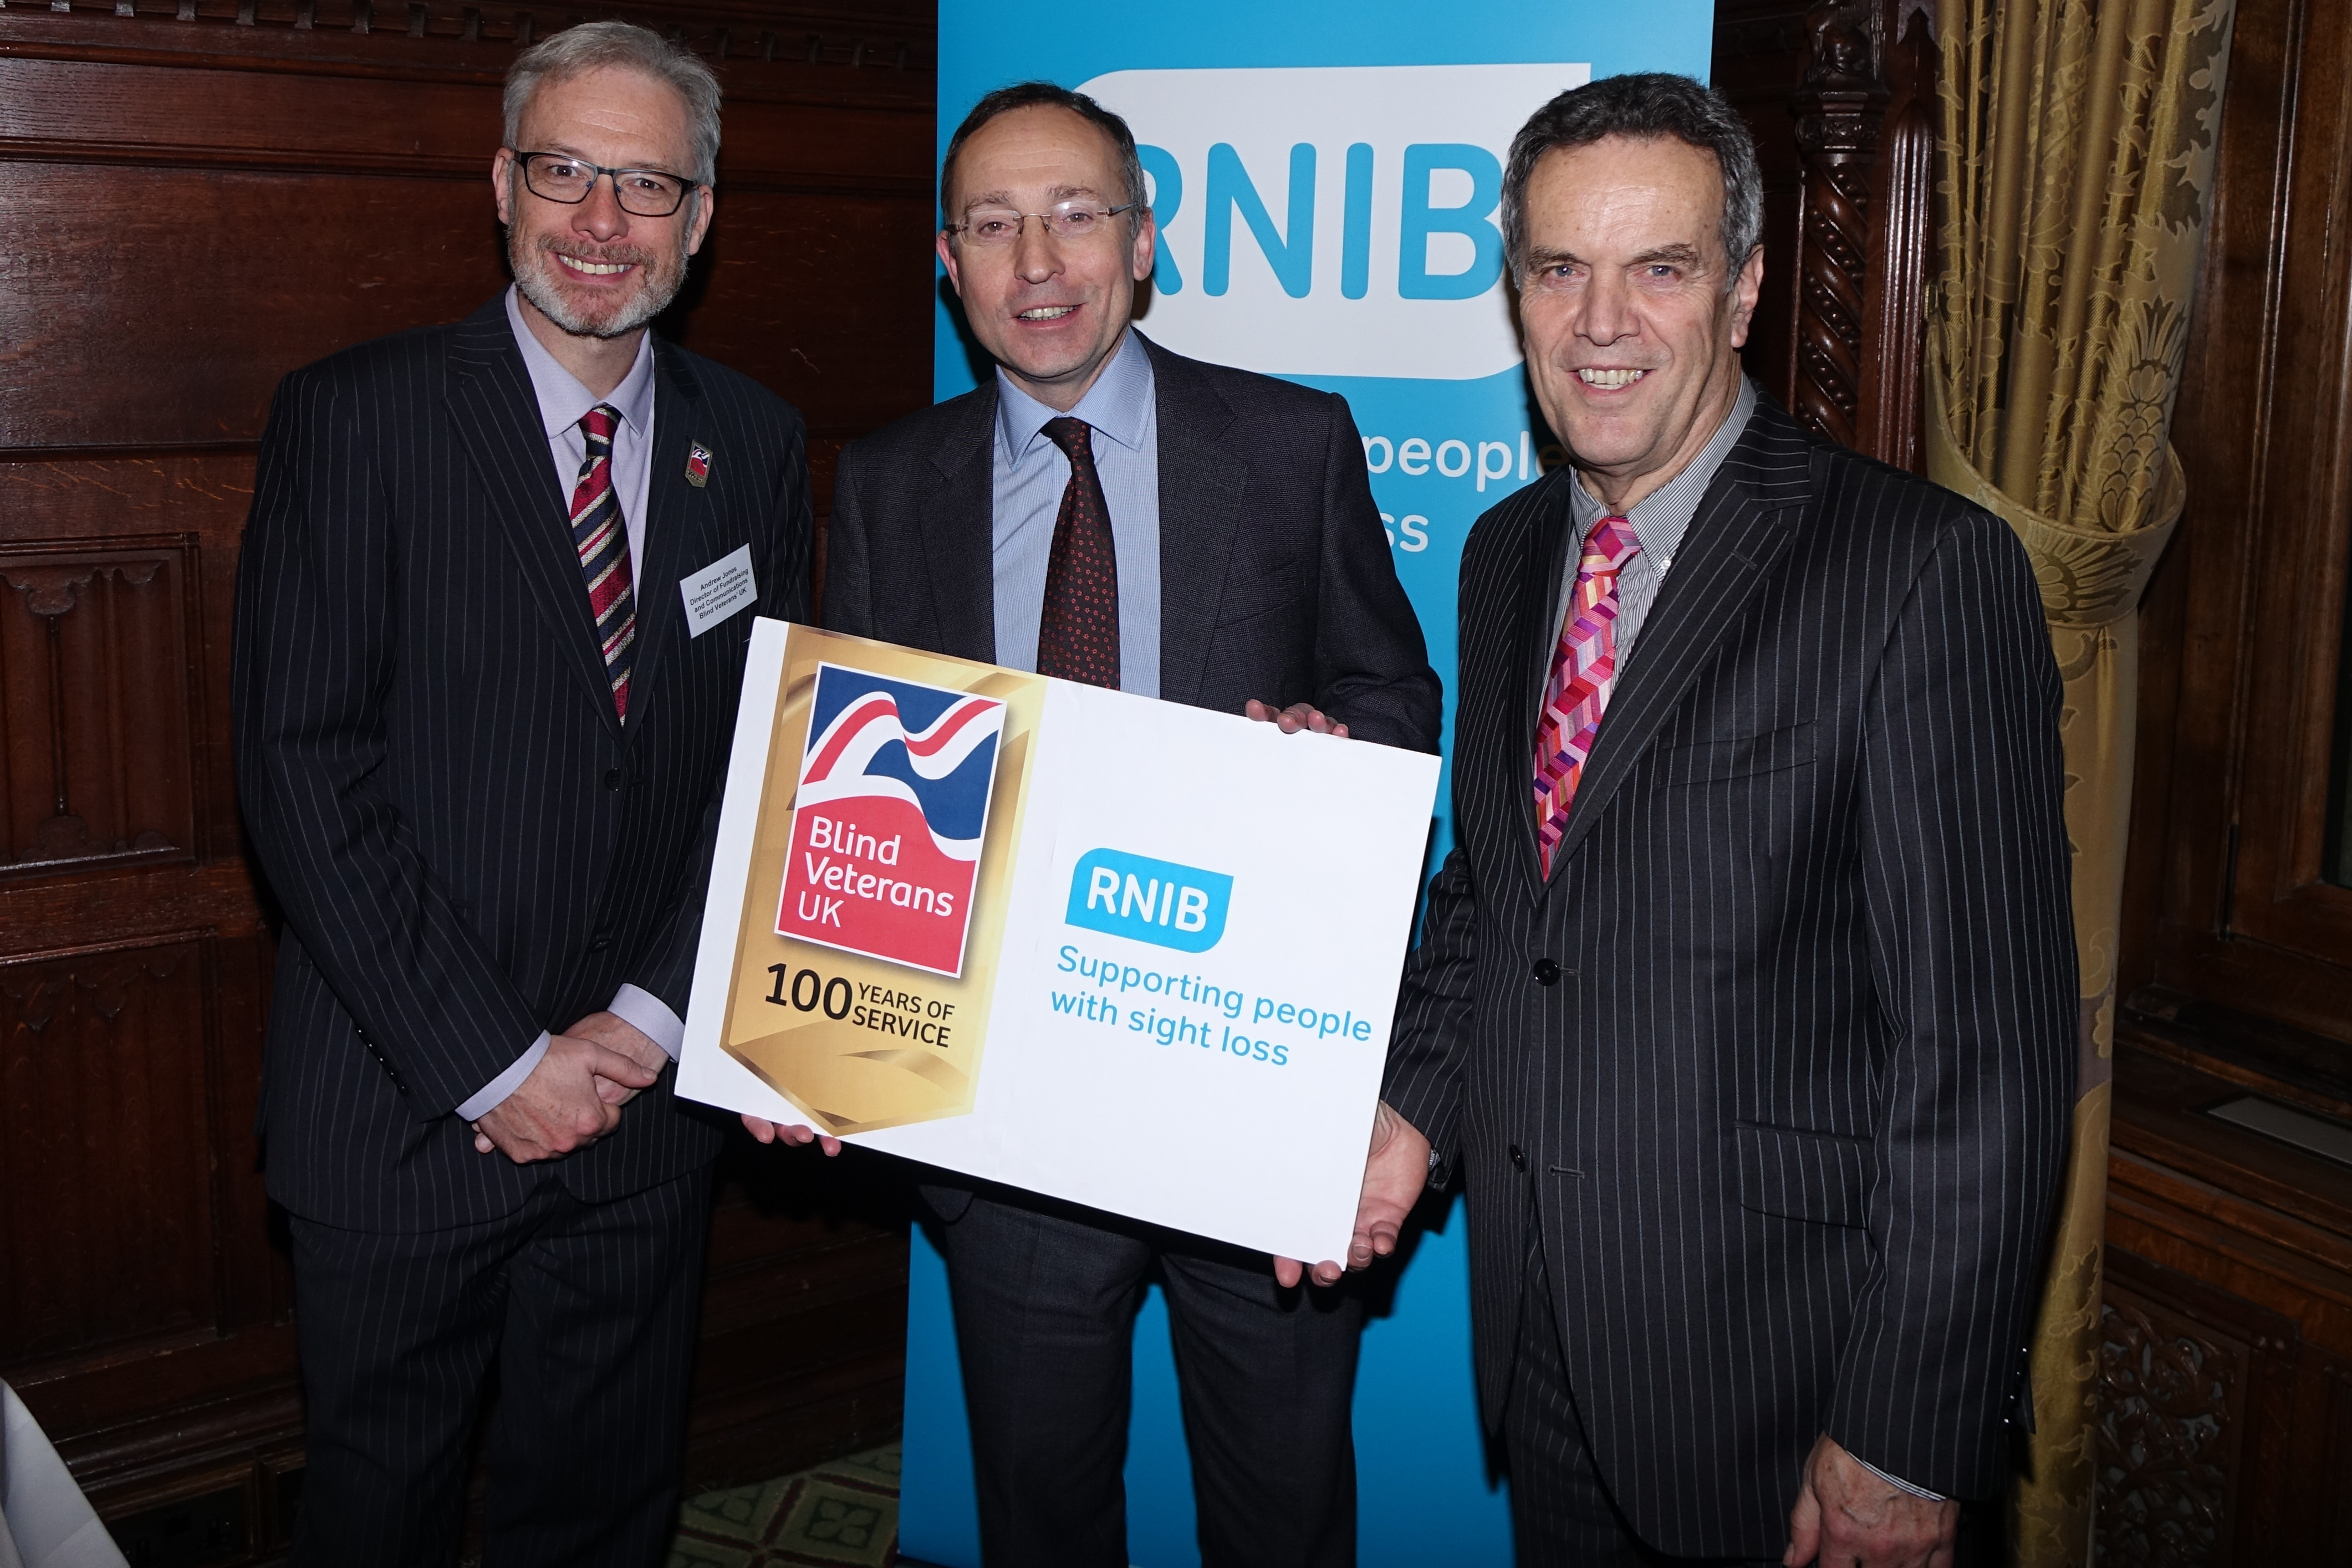 Andy_Slaughter_MP__Steve_Winyard_(RNIB)__Andrew_Jones_(Blind_Veterans_UK).jpg